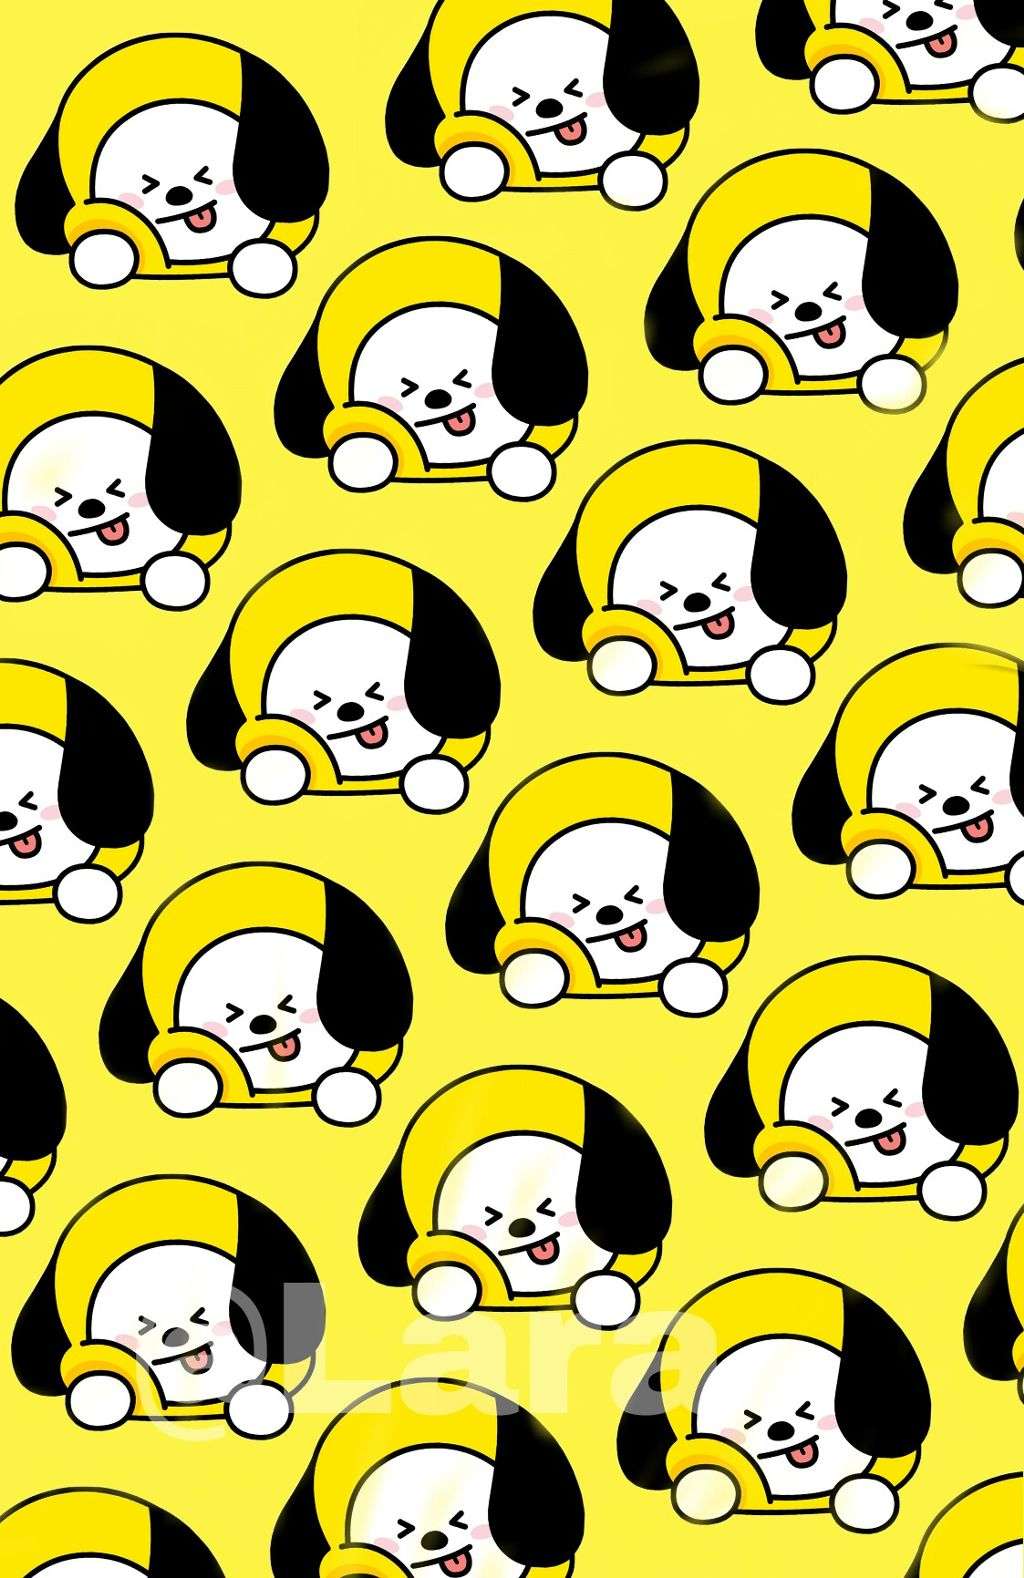 bts bt21 chimmy jimin kawaii wallpaper freetoedit